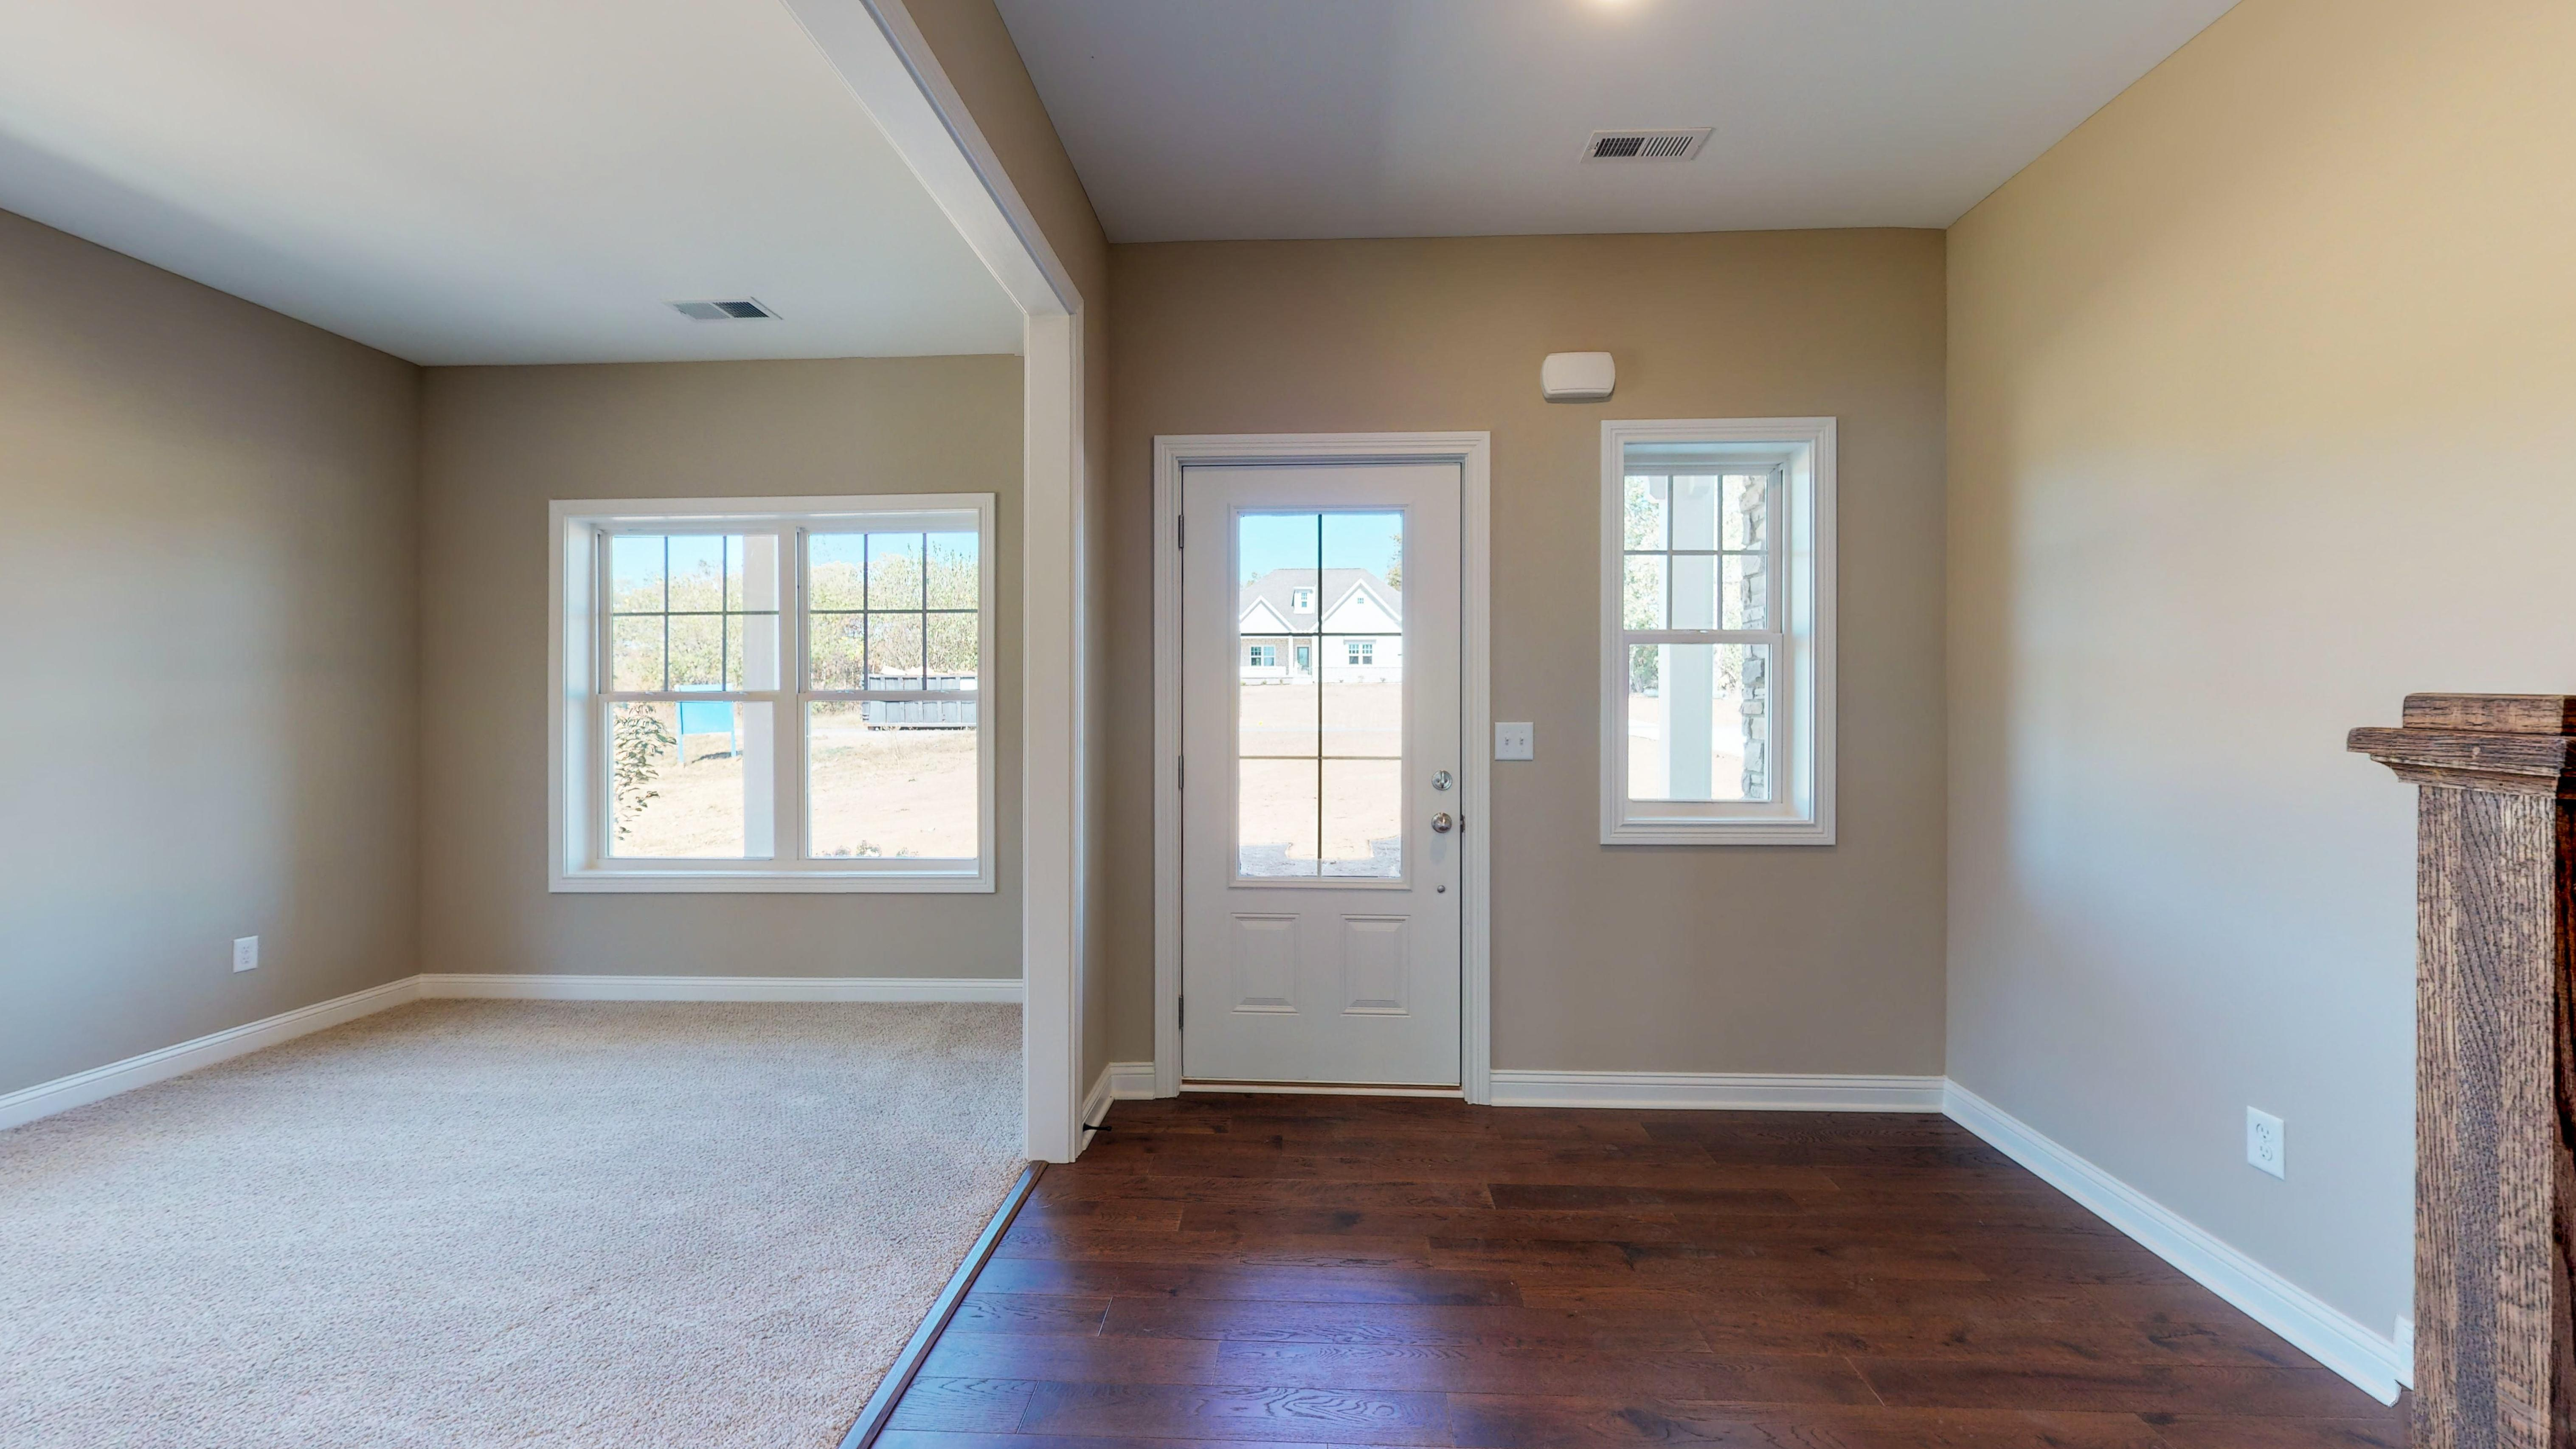 Living Area featured in The Jackie - 3rd Car By James Monroe Homes in Lexington, KY